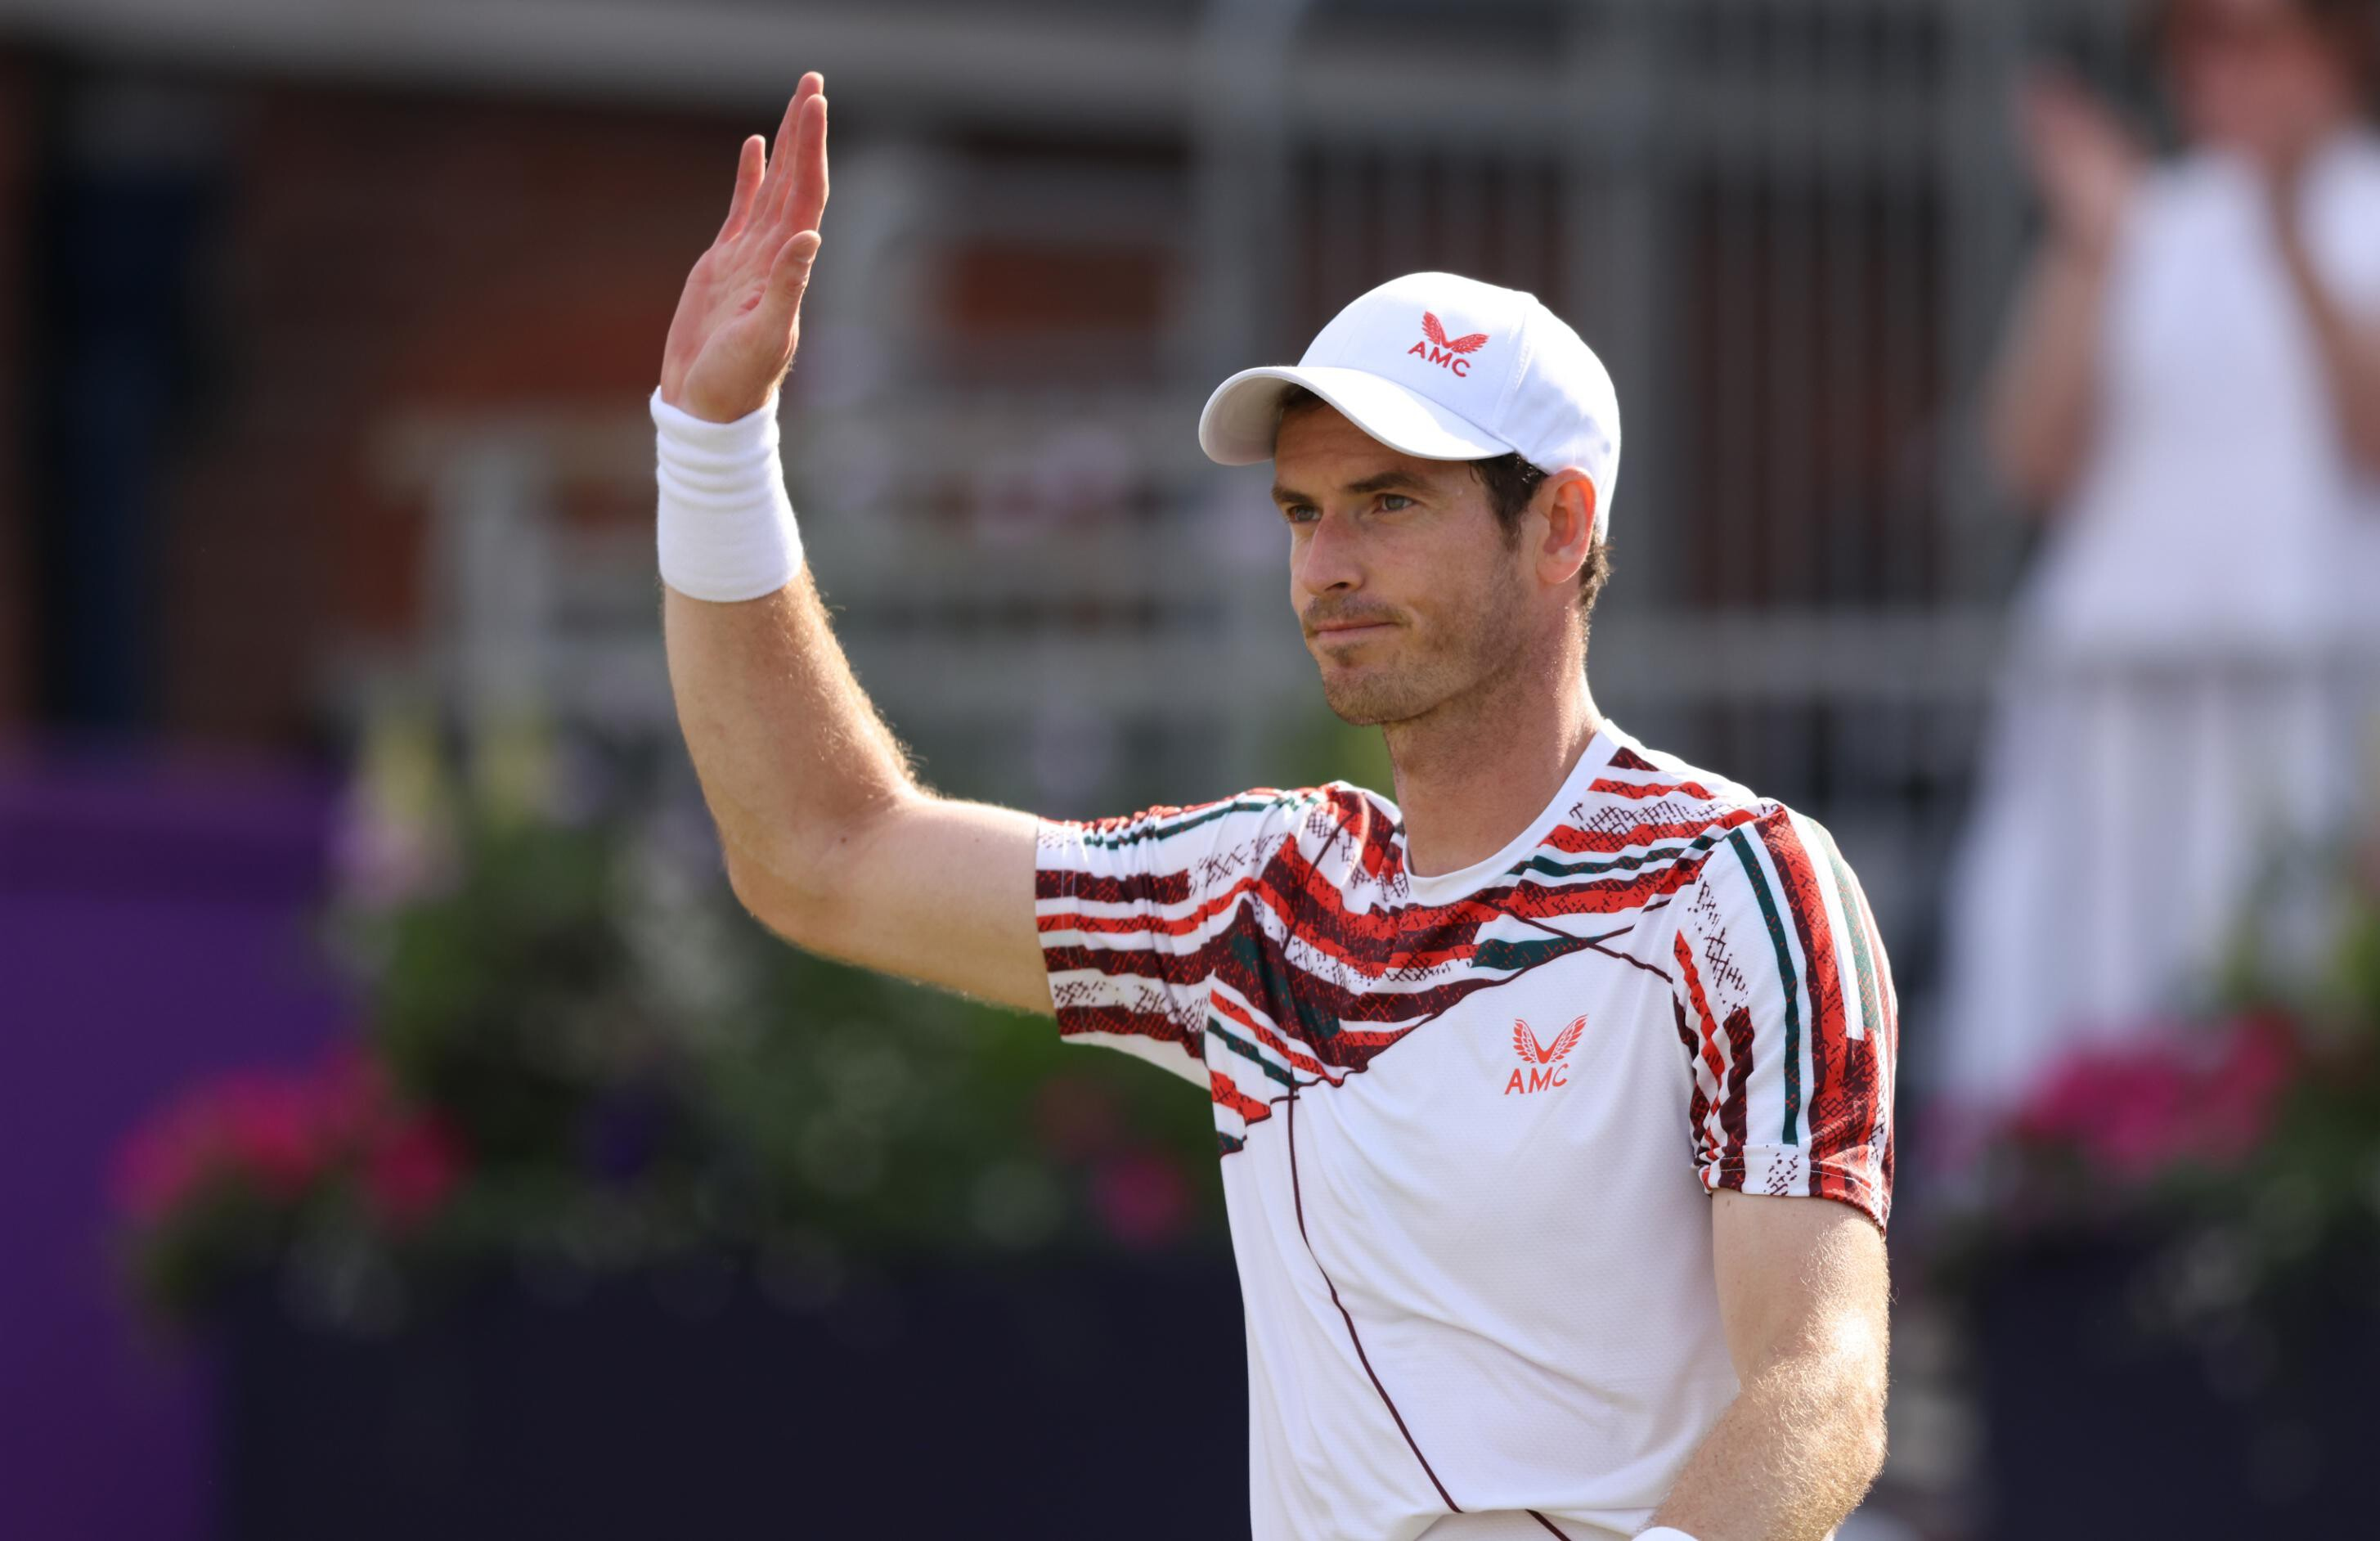 Tennis star Andy Murray says players 'have a responsibility' to get vaccine